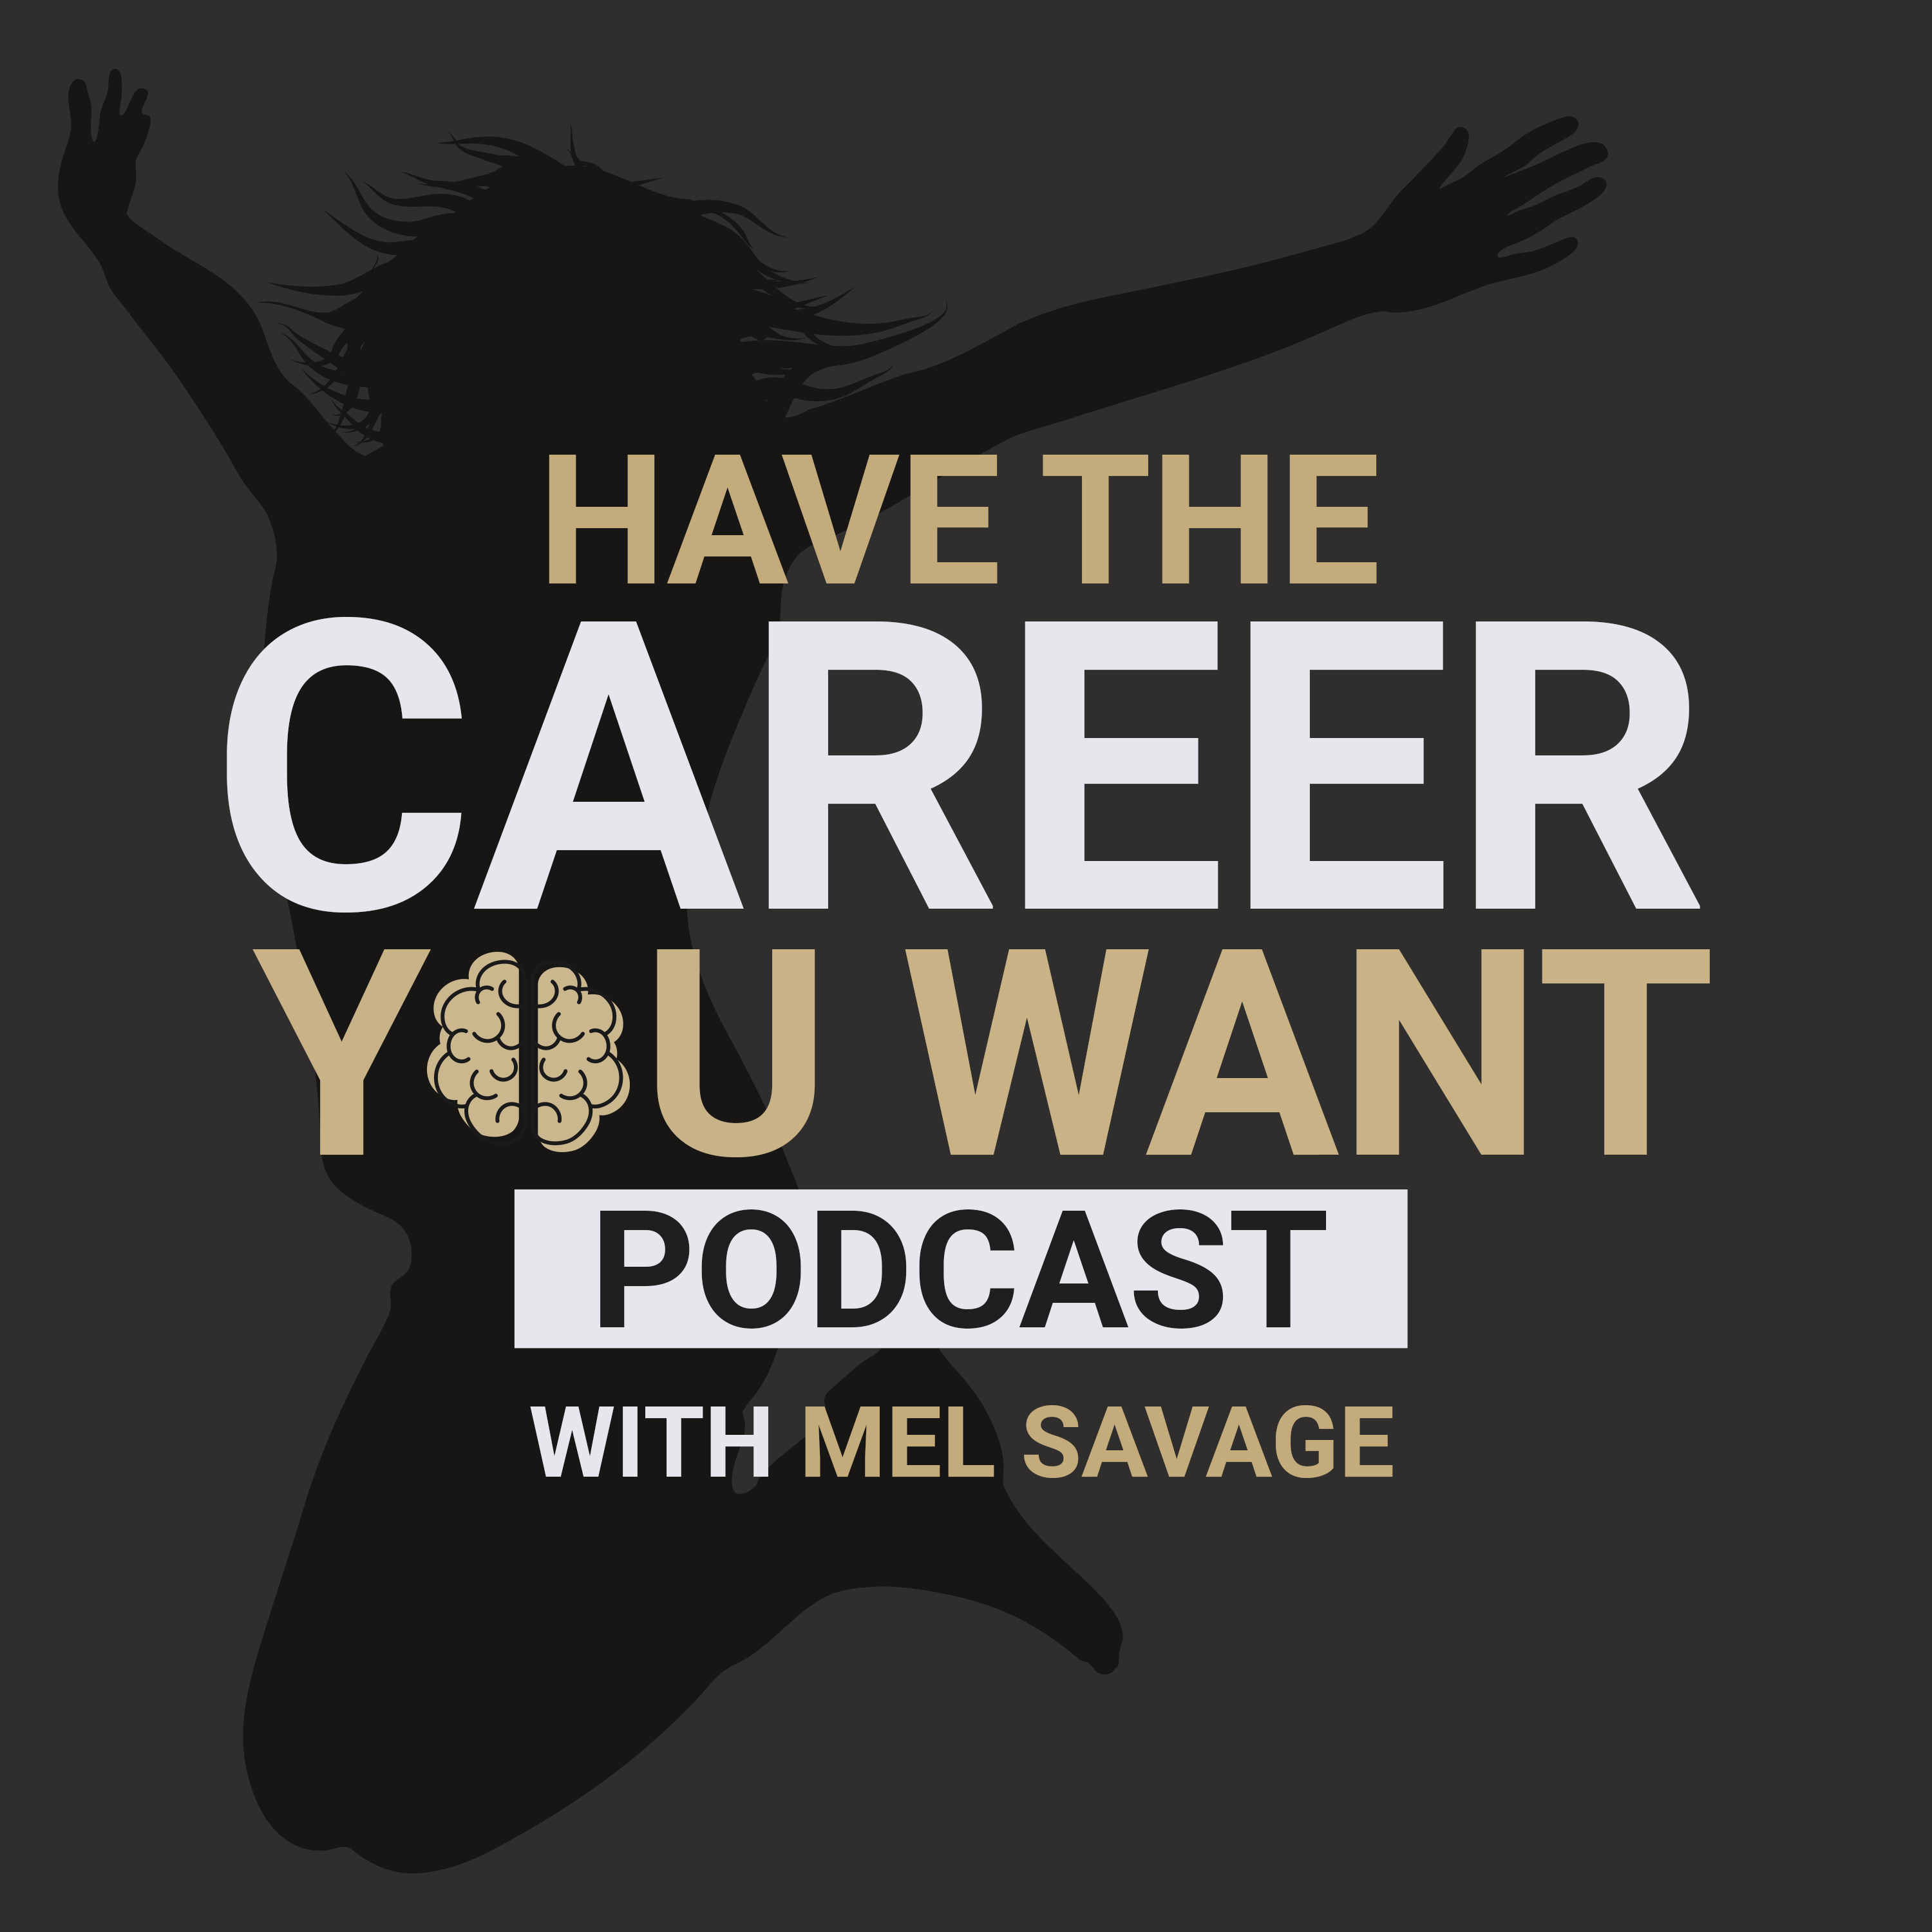 Have the Career You Want Podcast